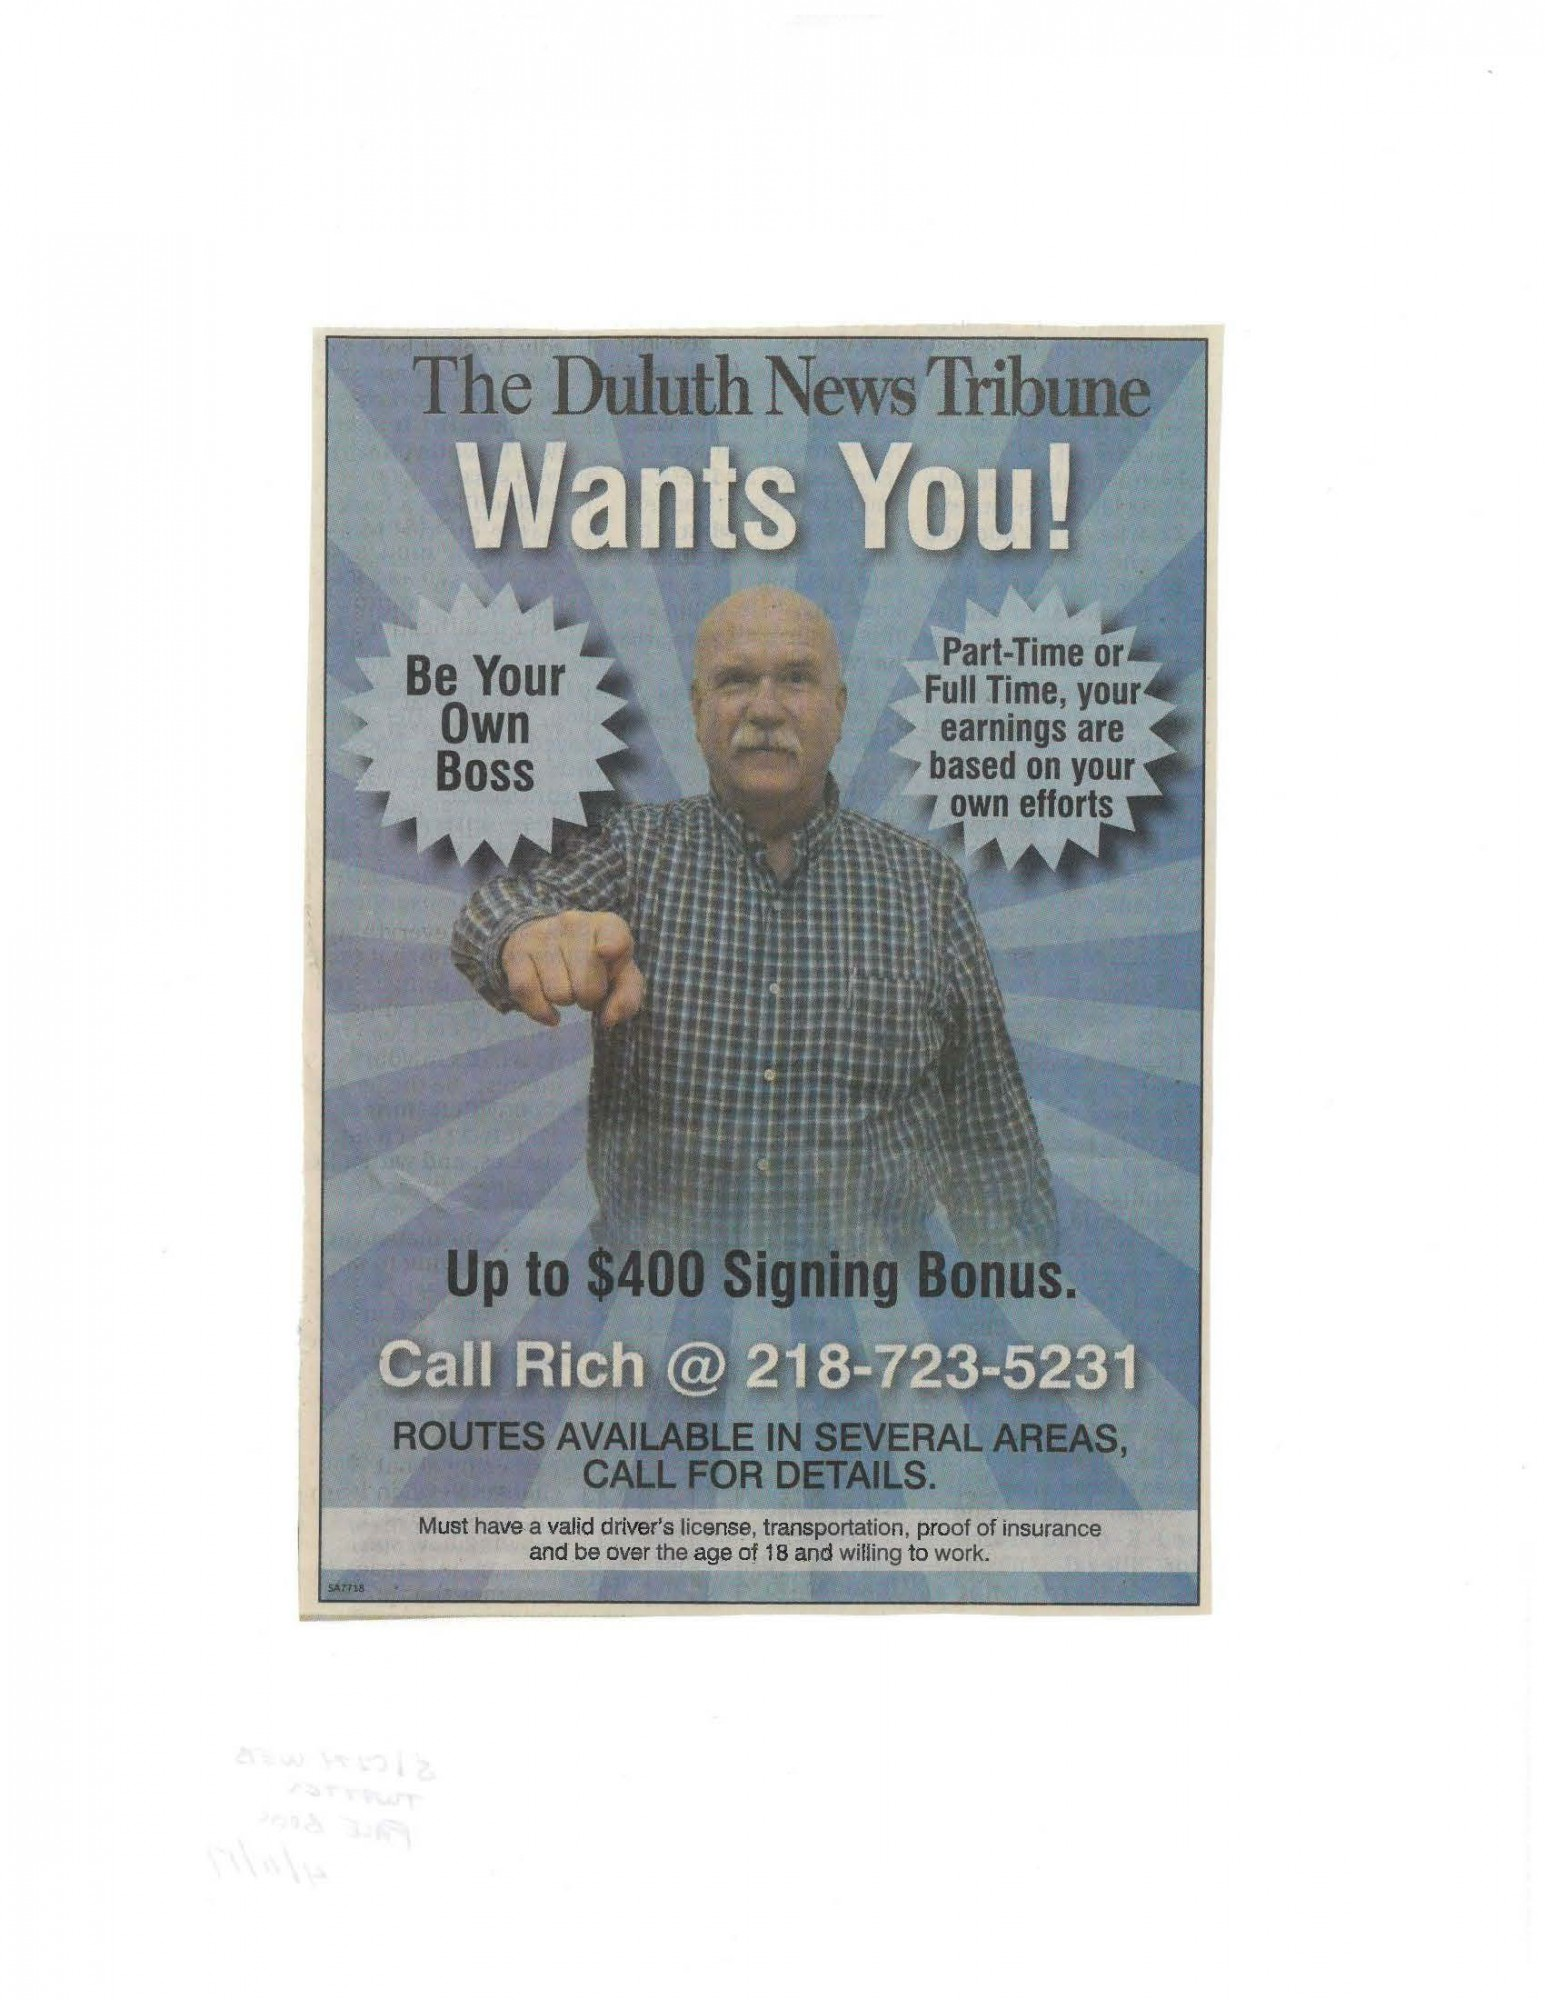 Idea #34 of 50 Days of Ideas! THE DULUTH NEWS TRIBUNE WANTS YOU!